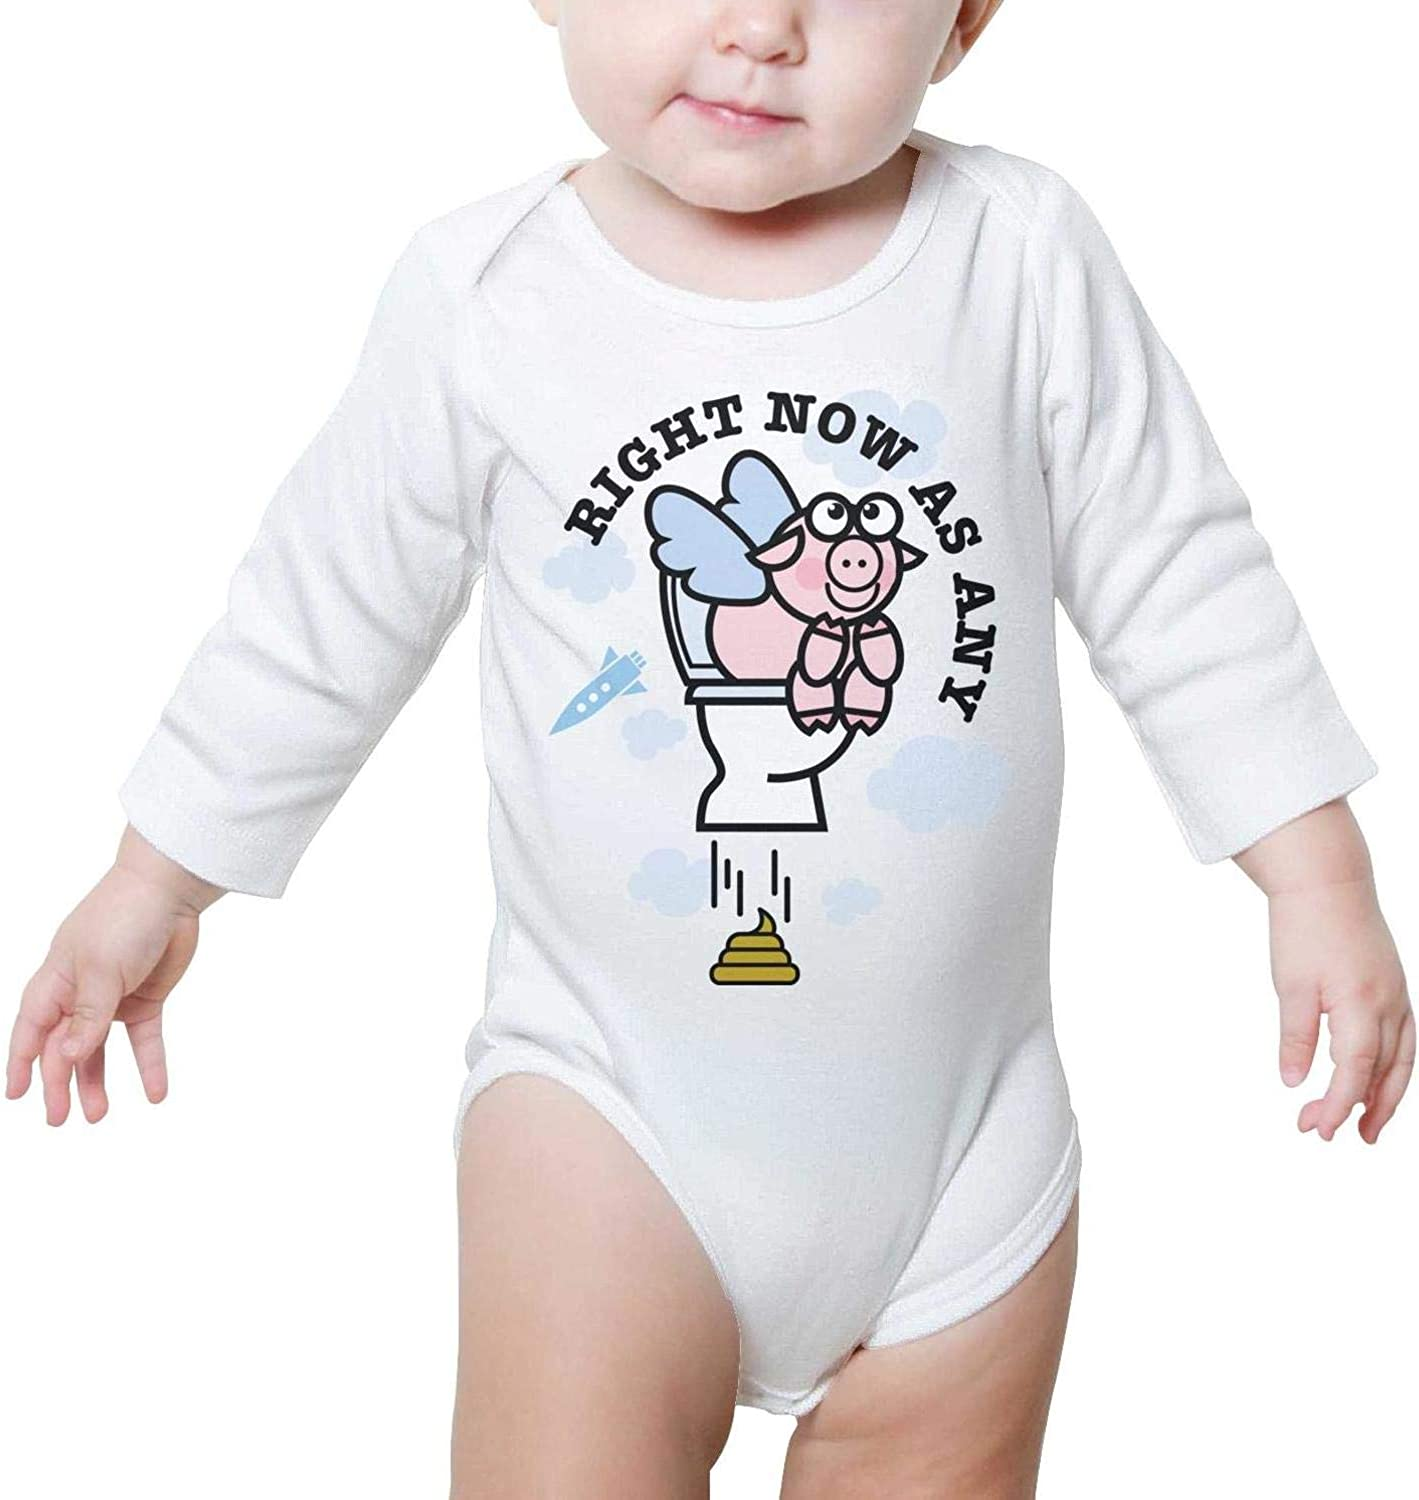 When Pigs Fly Pig Wings Flying High Right Now As Any Baby Onesies Romper Long Sleeve Organic Cotton Gift